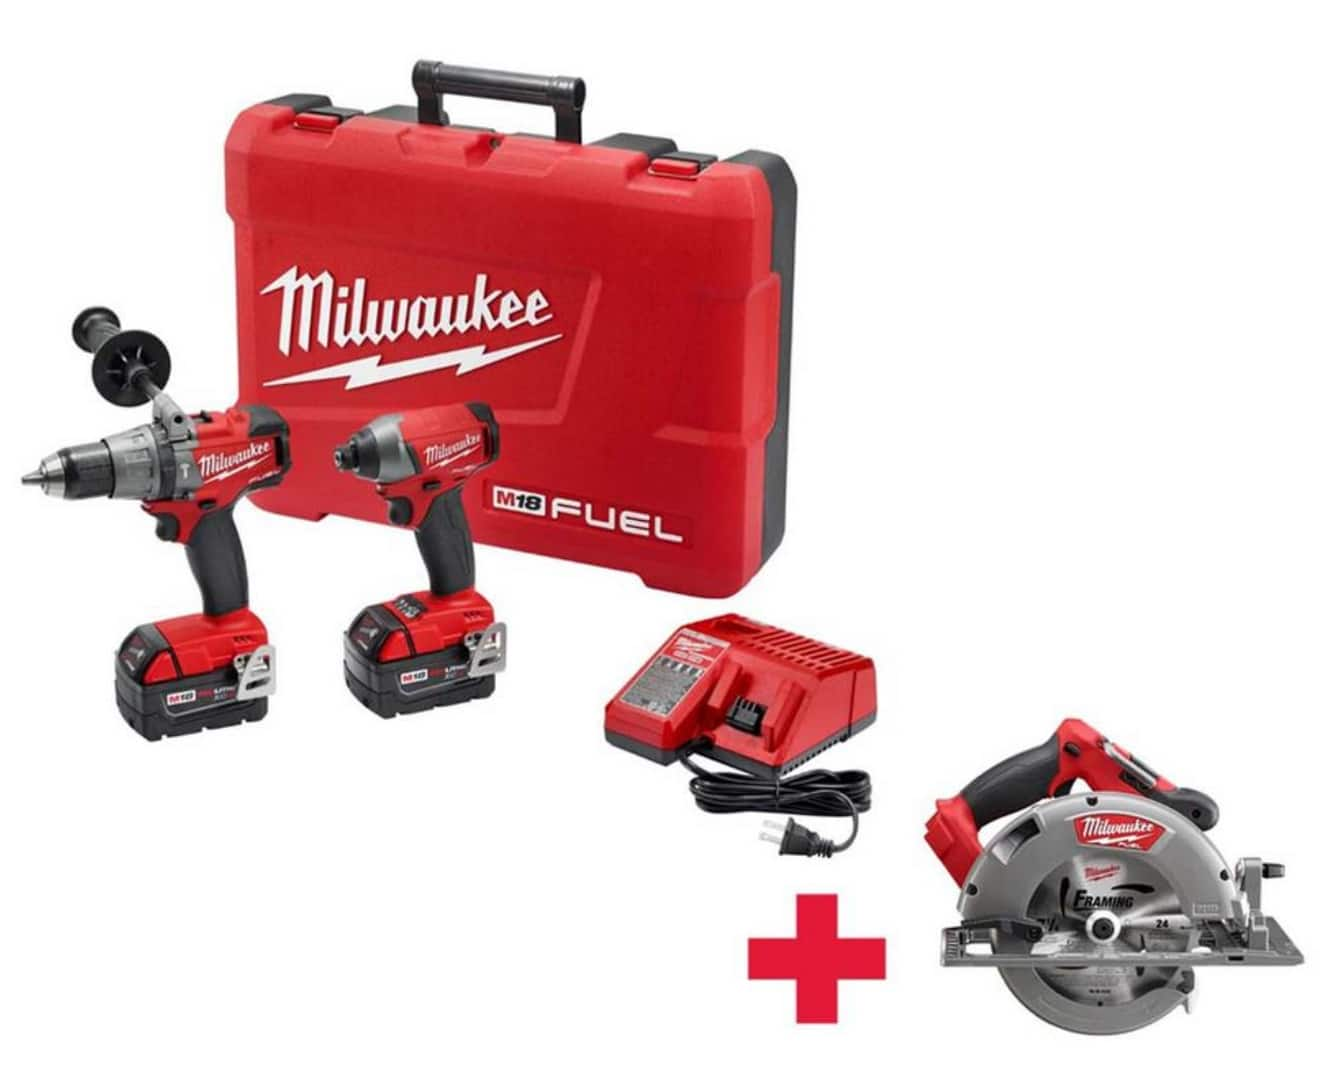 Milwaukee Brushless Combo Kit Special Buys @ Home Depot starting at $269.99 w/ free tools